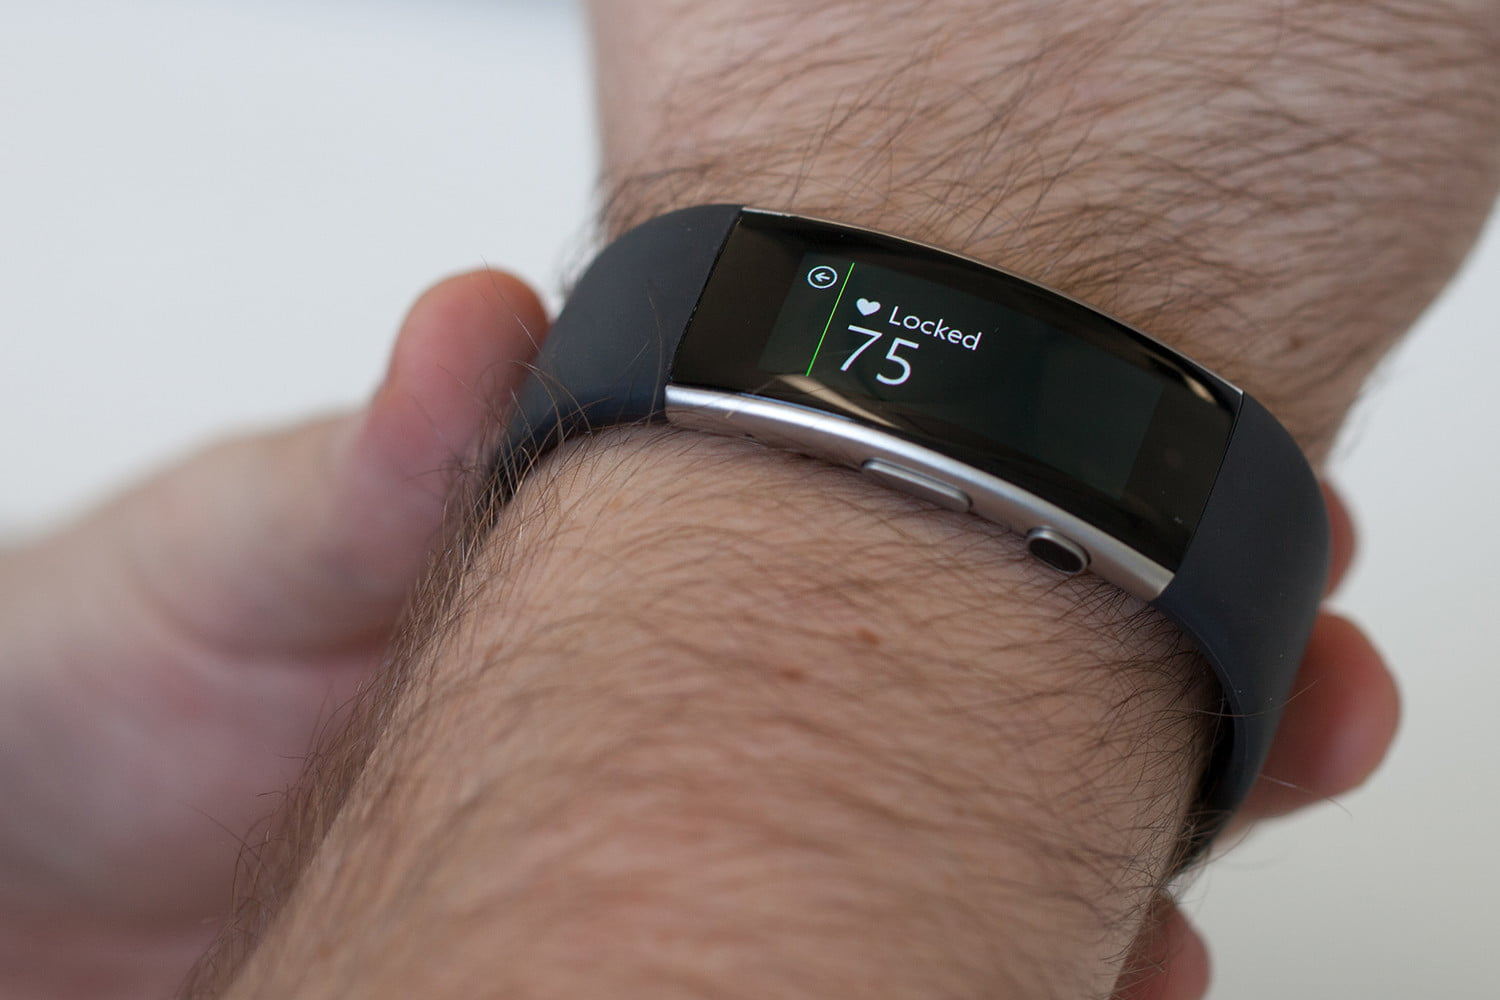 new patents suggest microsoft band fitness tracker may still be on track